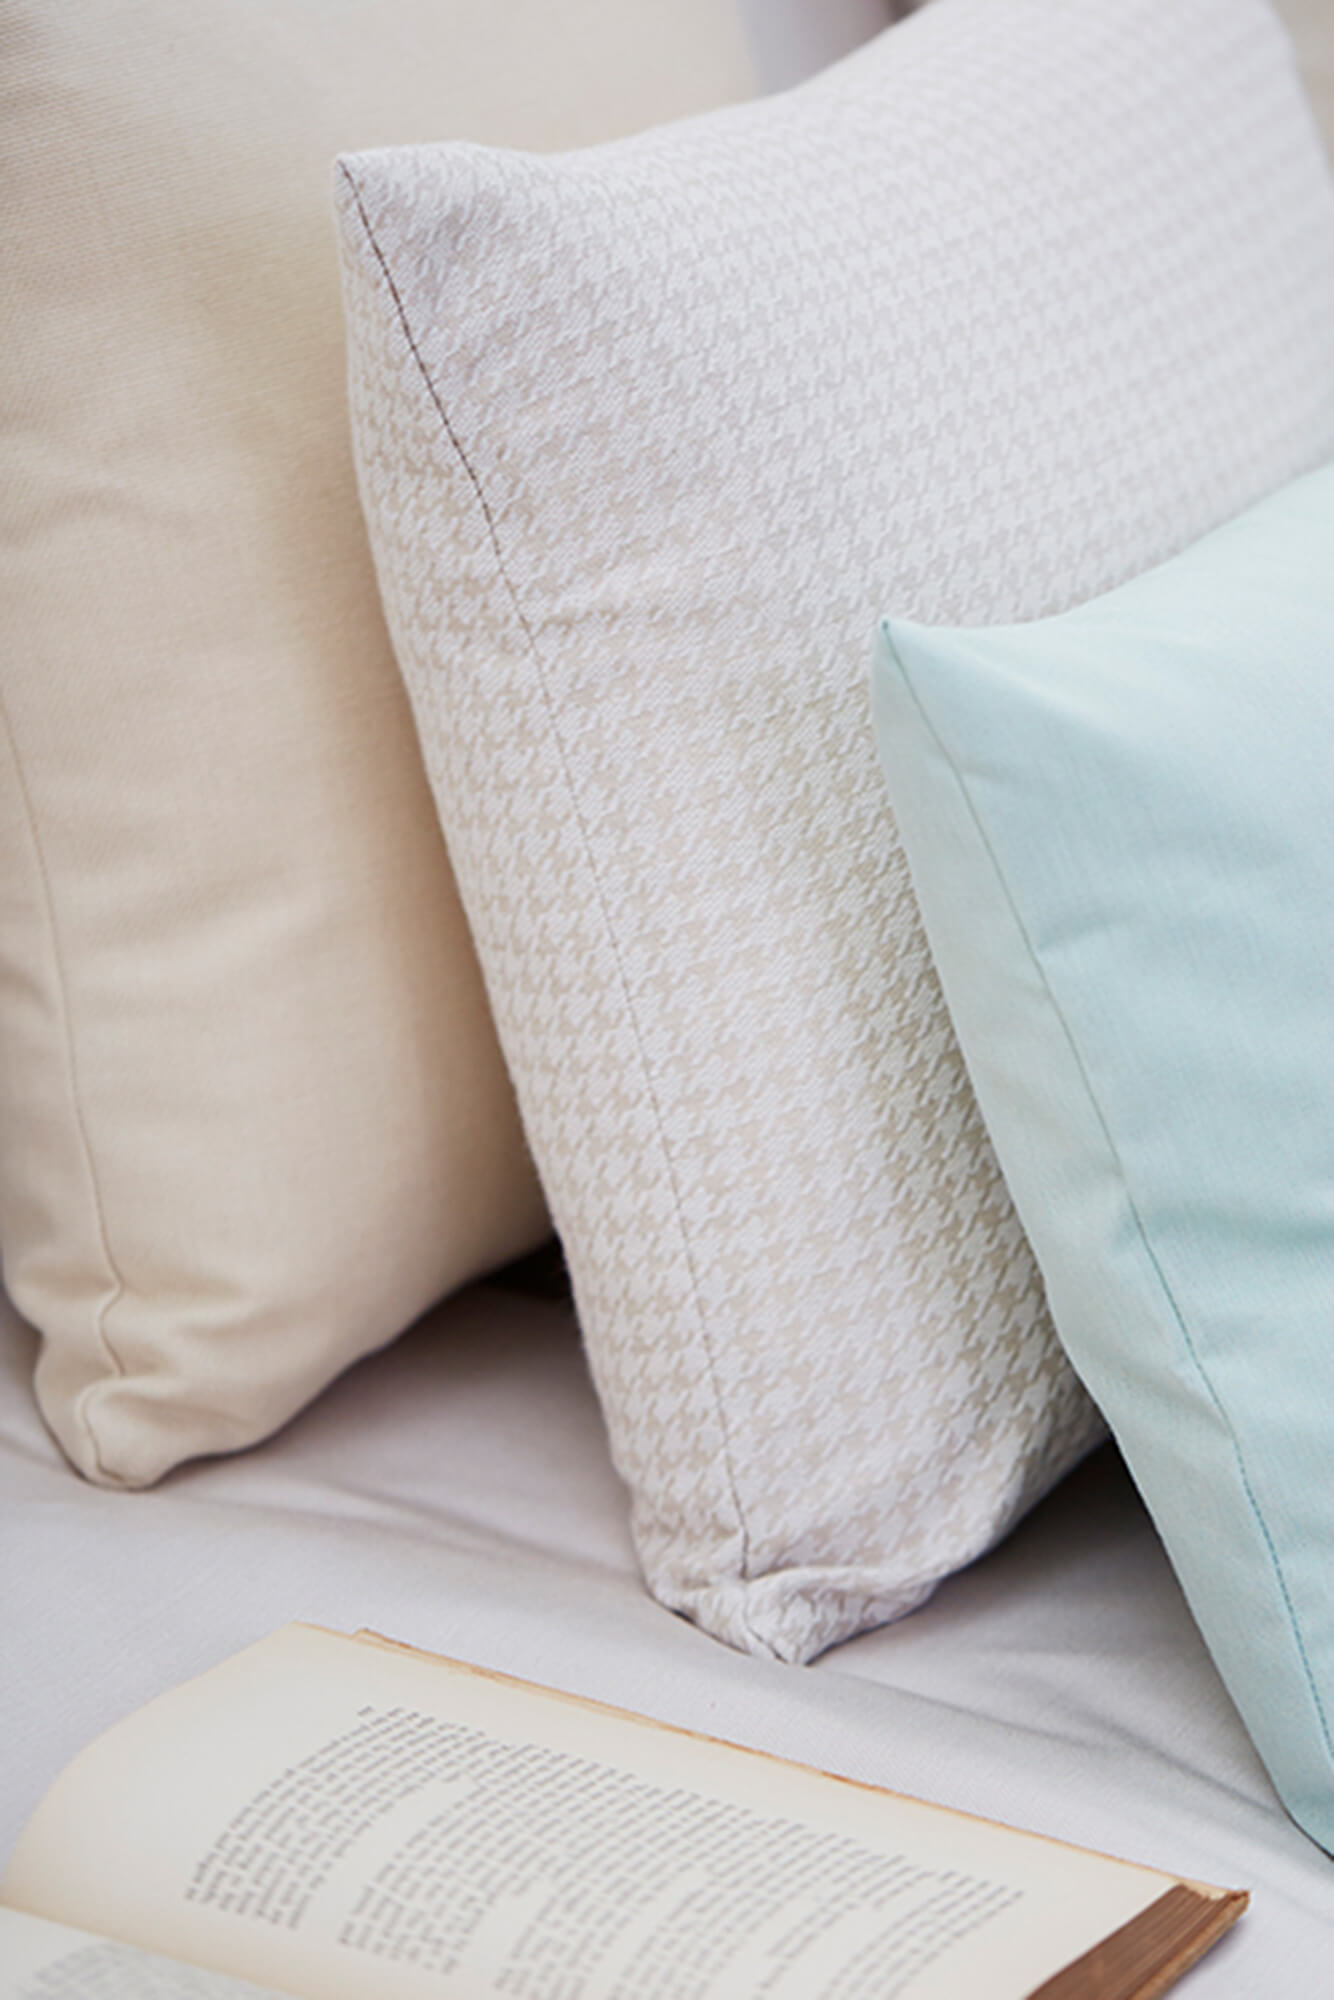 Neutral and teal pillows made using Sunbrella fabrics sit on a white sofa